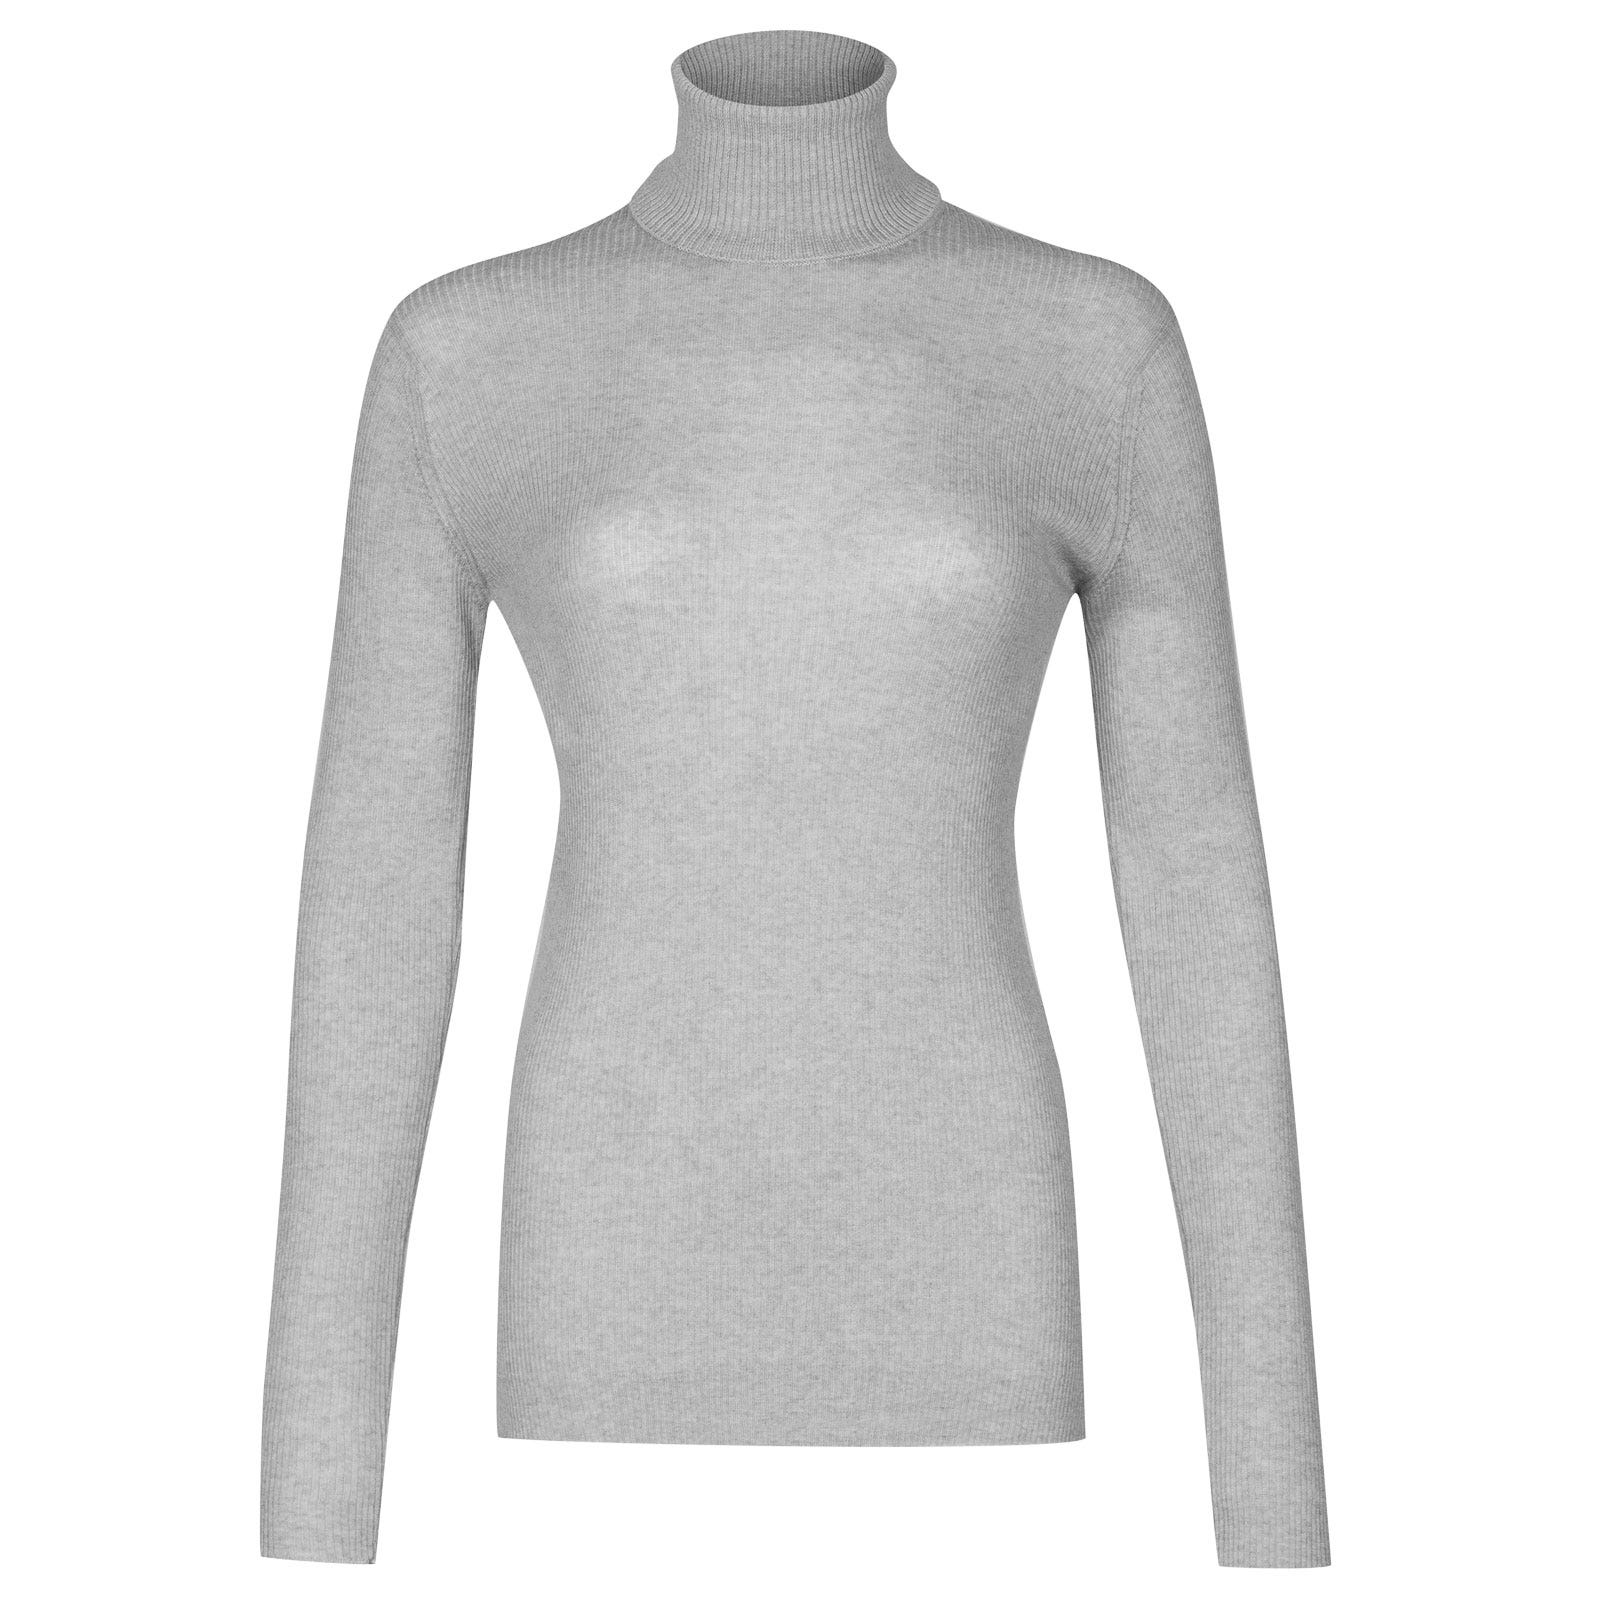 John Smedley massey Merino Wool Sweater in Bardot Grey-XL